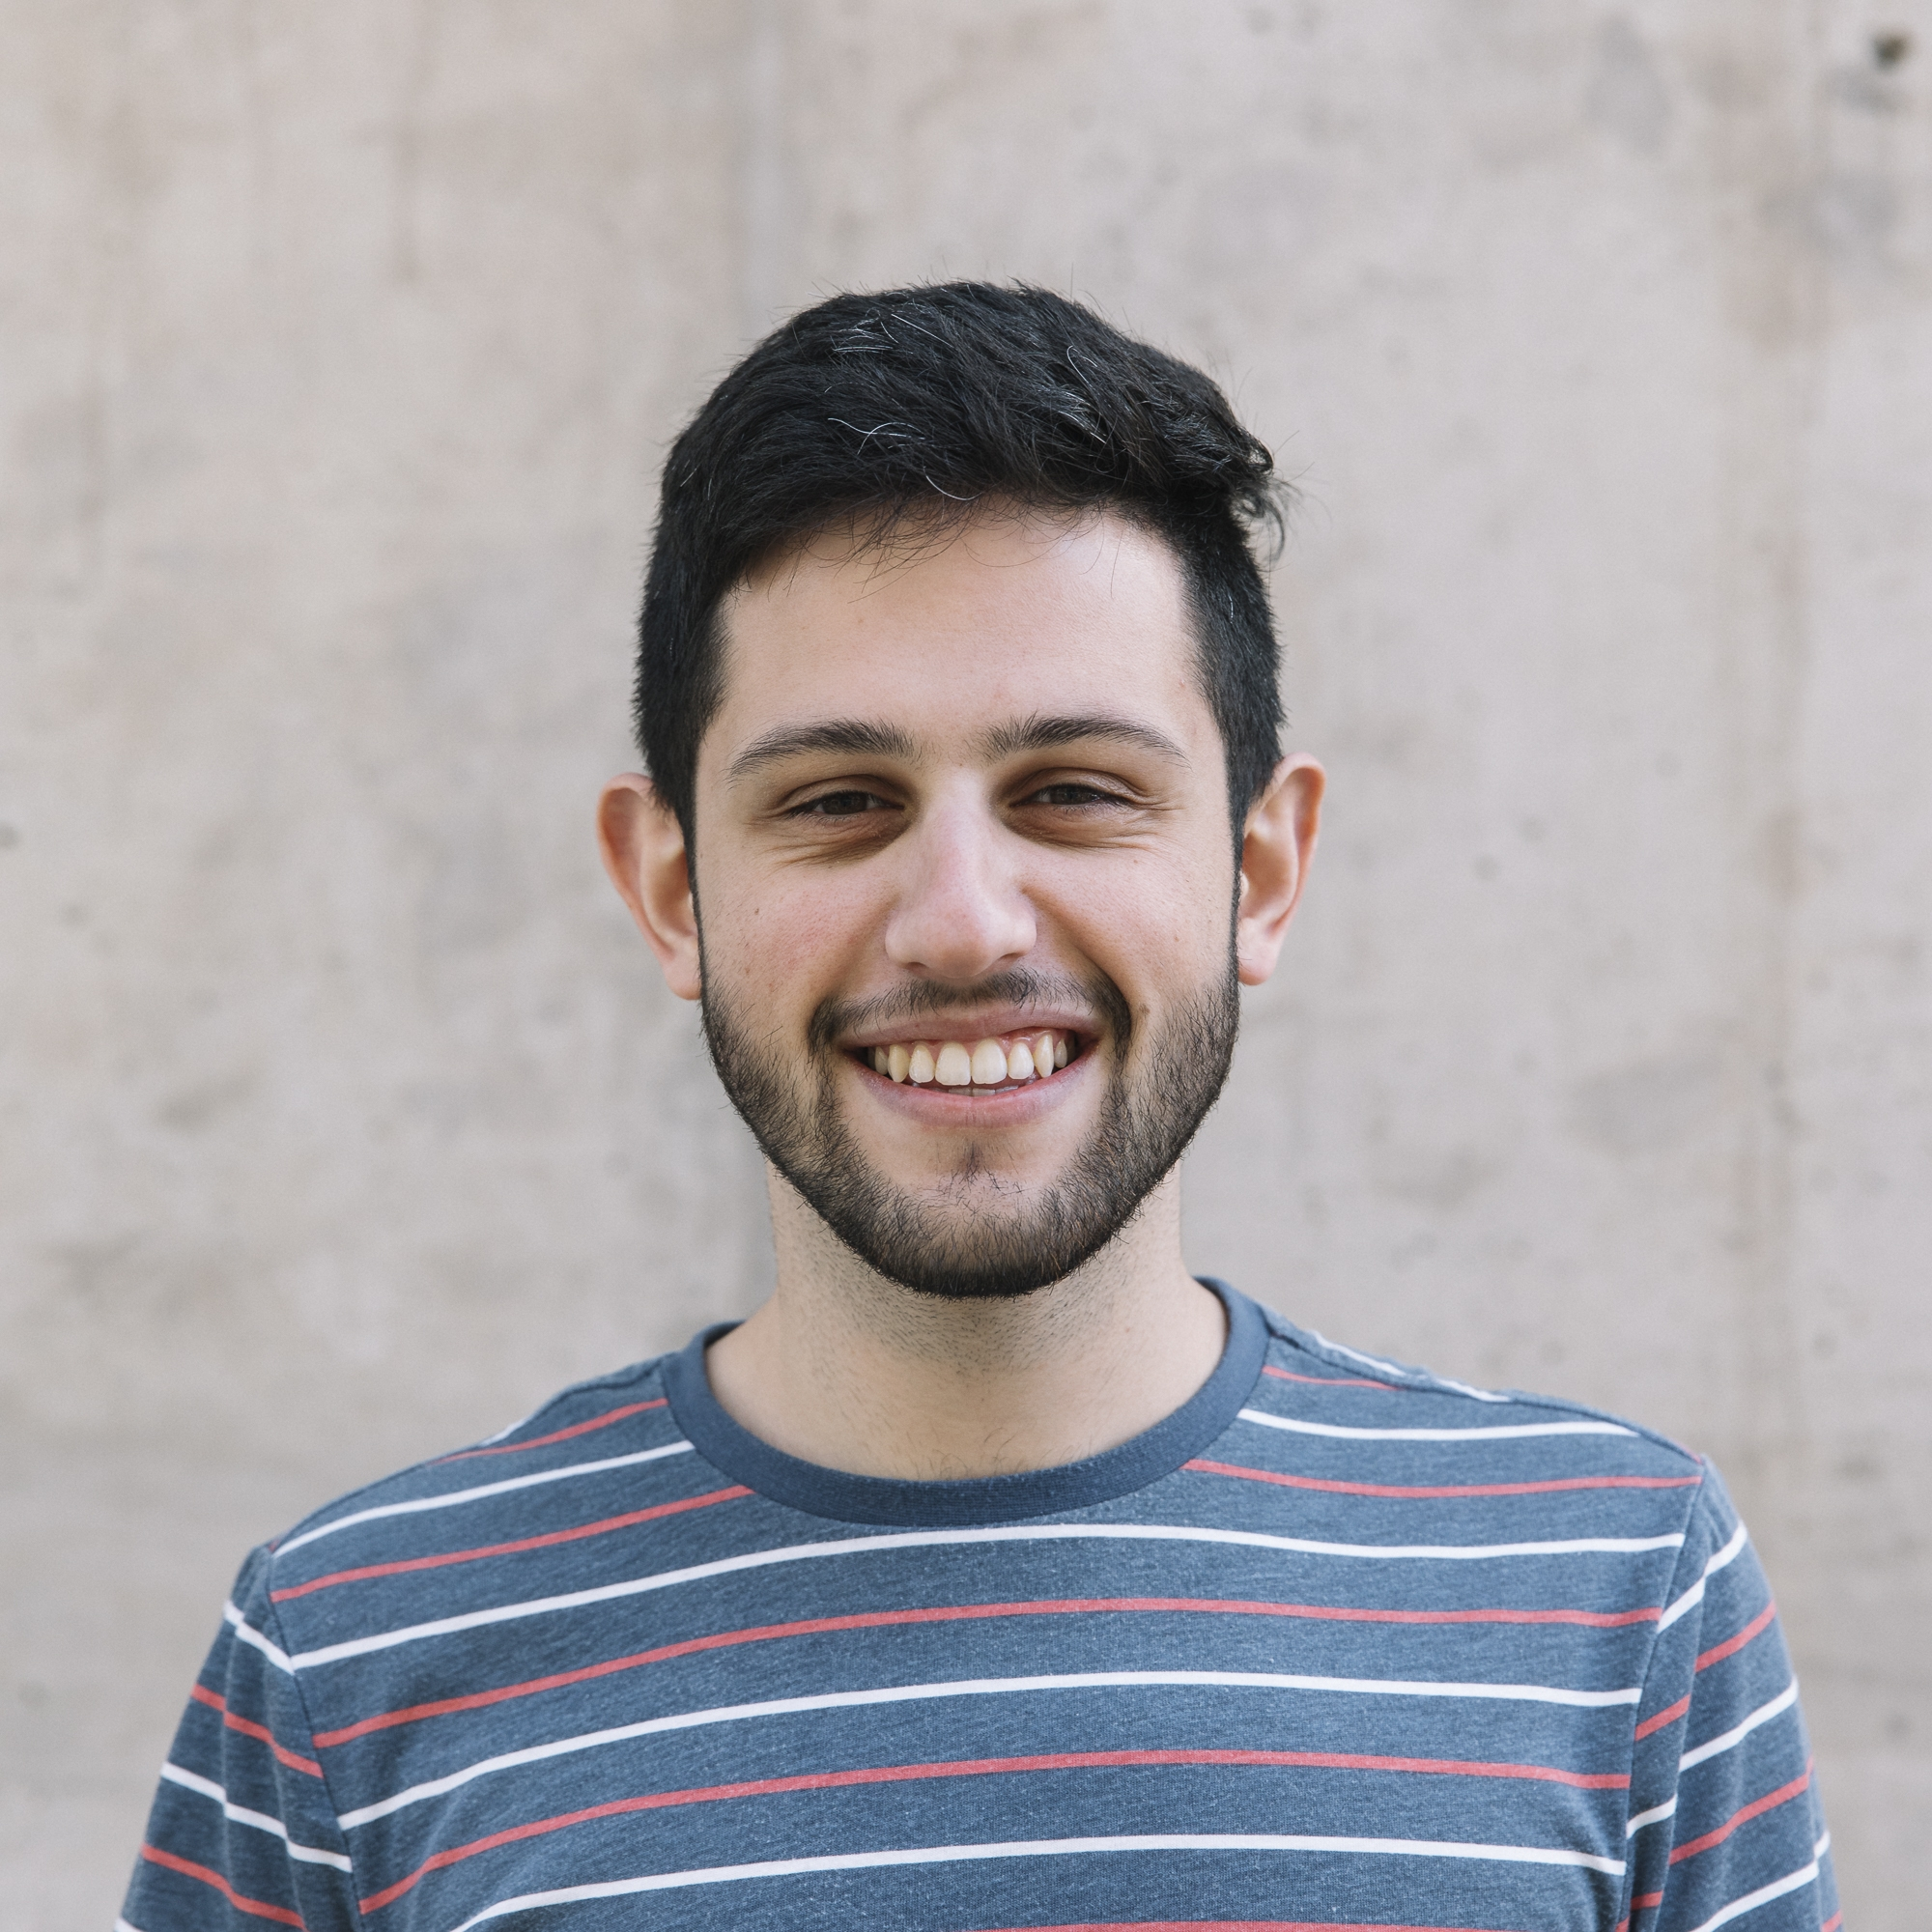 Kosta Canatselis - Kosta is currently studying Innovation and Entrepreneurship at the University of Adelaide while also working on a startup focusing on enabling the safe and secure integration of autonomous devices into urban cities.He is passionate in giving everyone access to education and has a strong interest in nurturing community-based entrepreneurship.